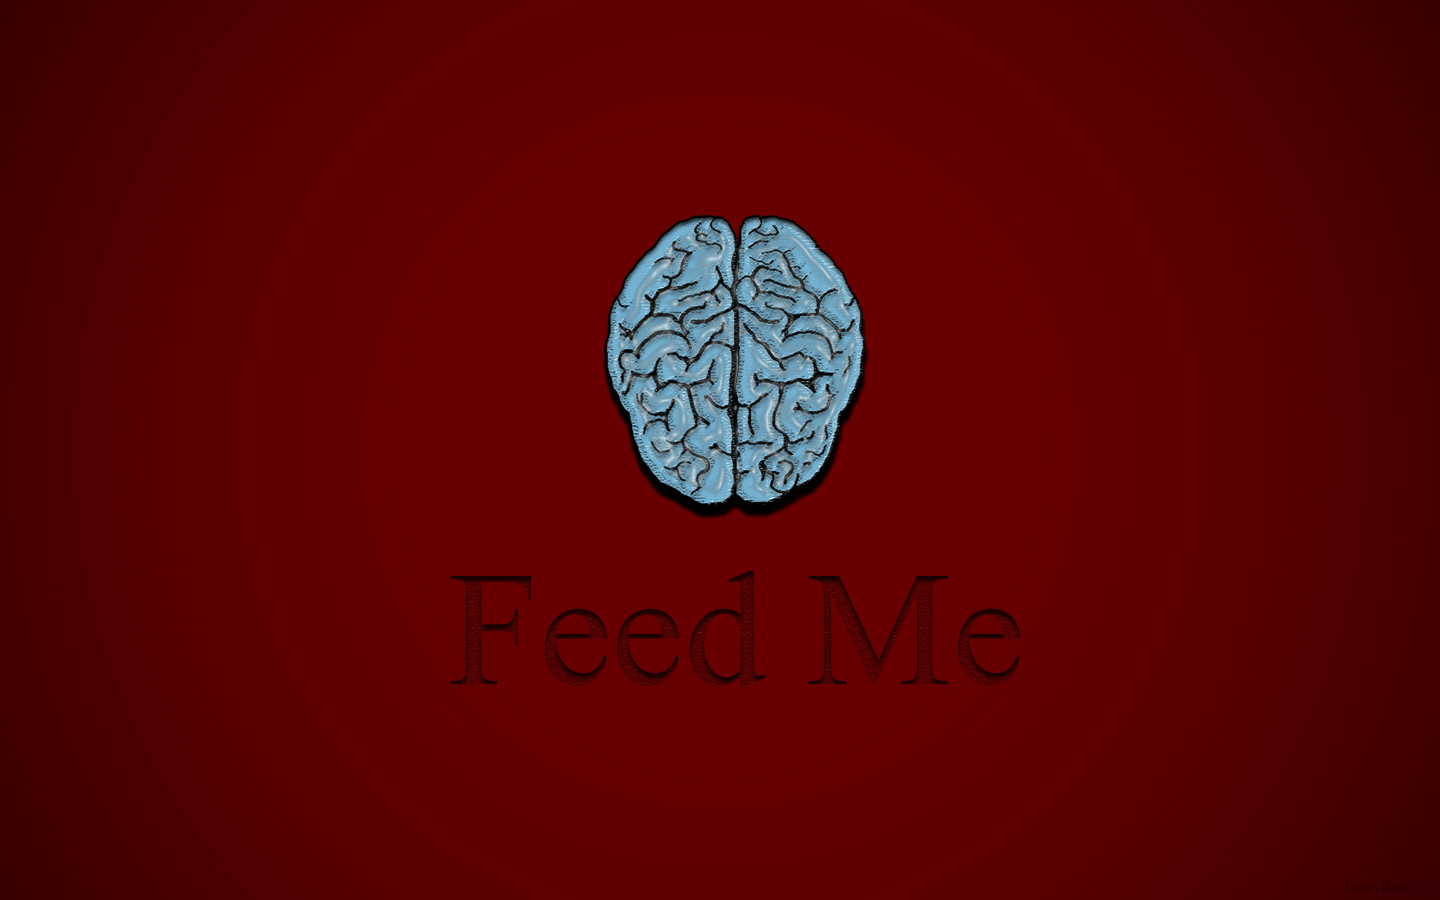 Feed the Brain